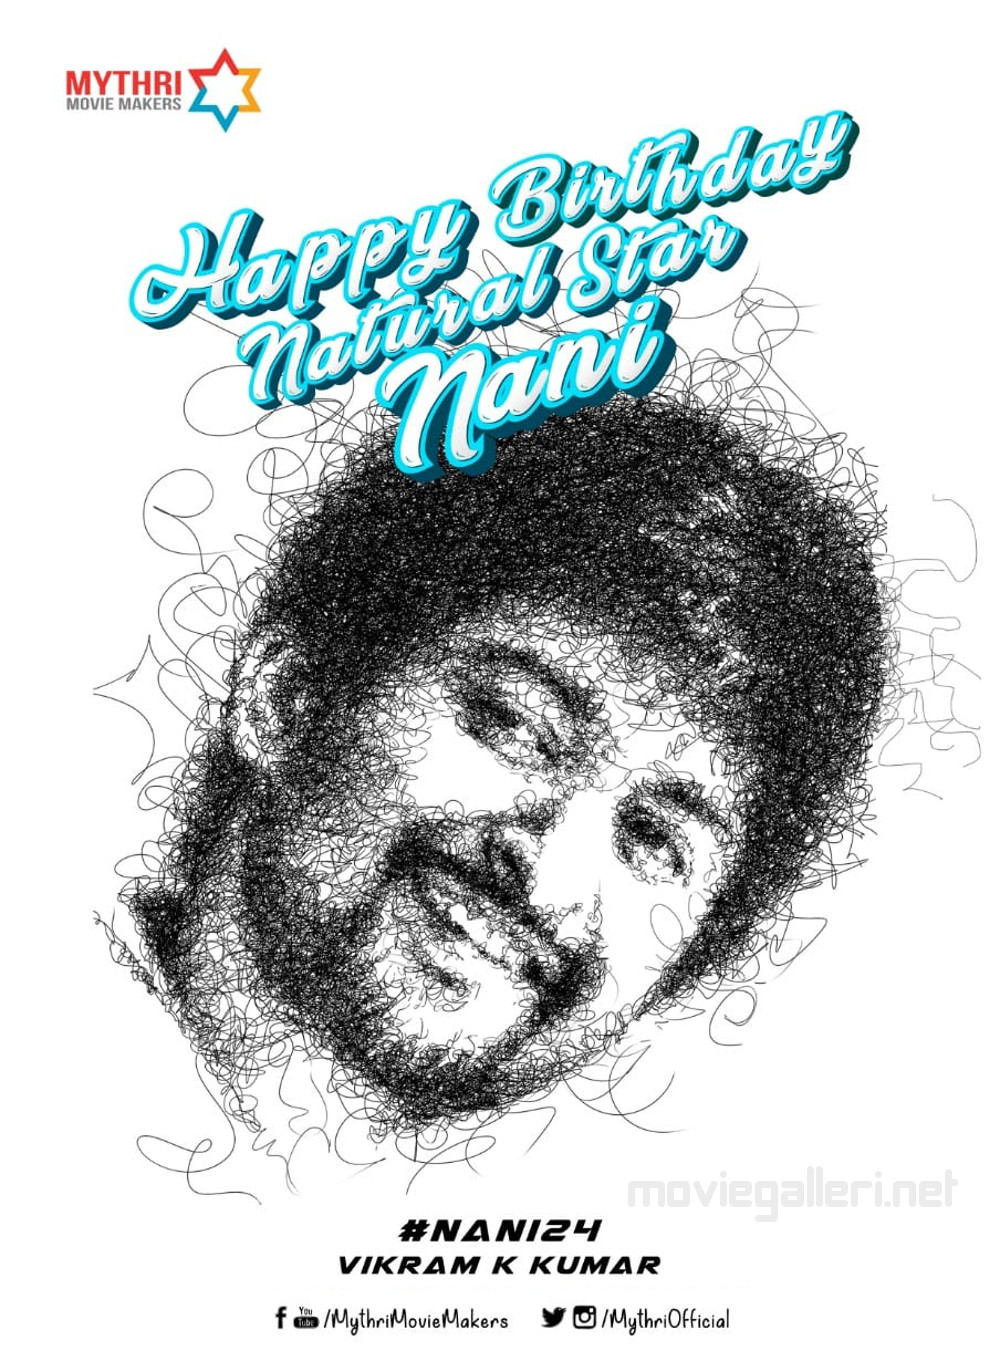 Mythri Movie Makers Nani Birthday Wishes Posters